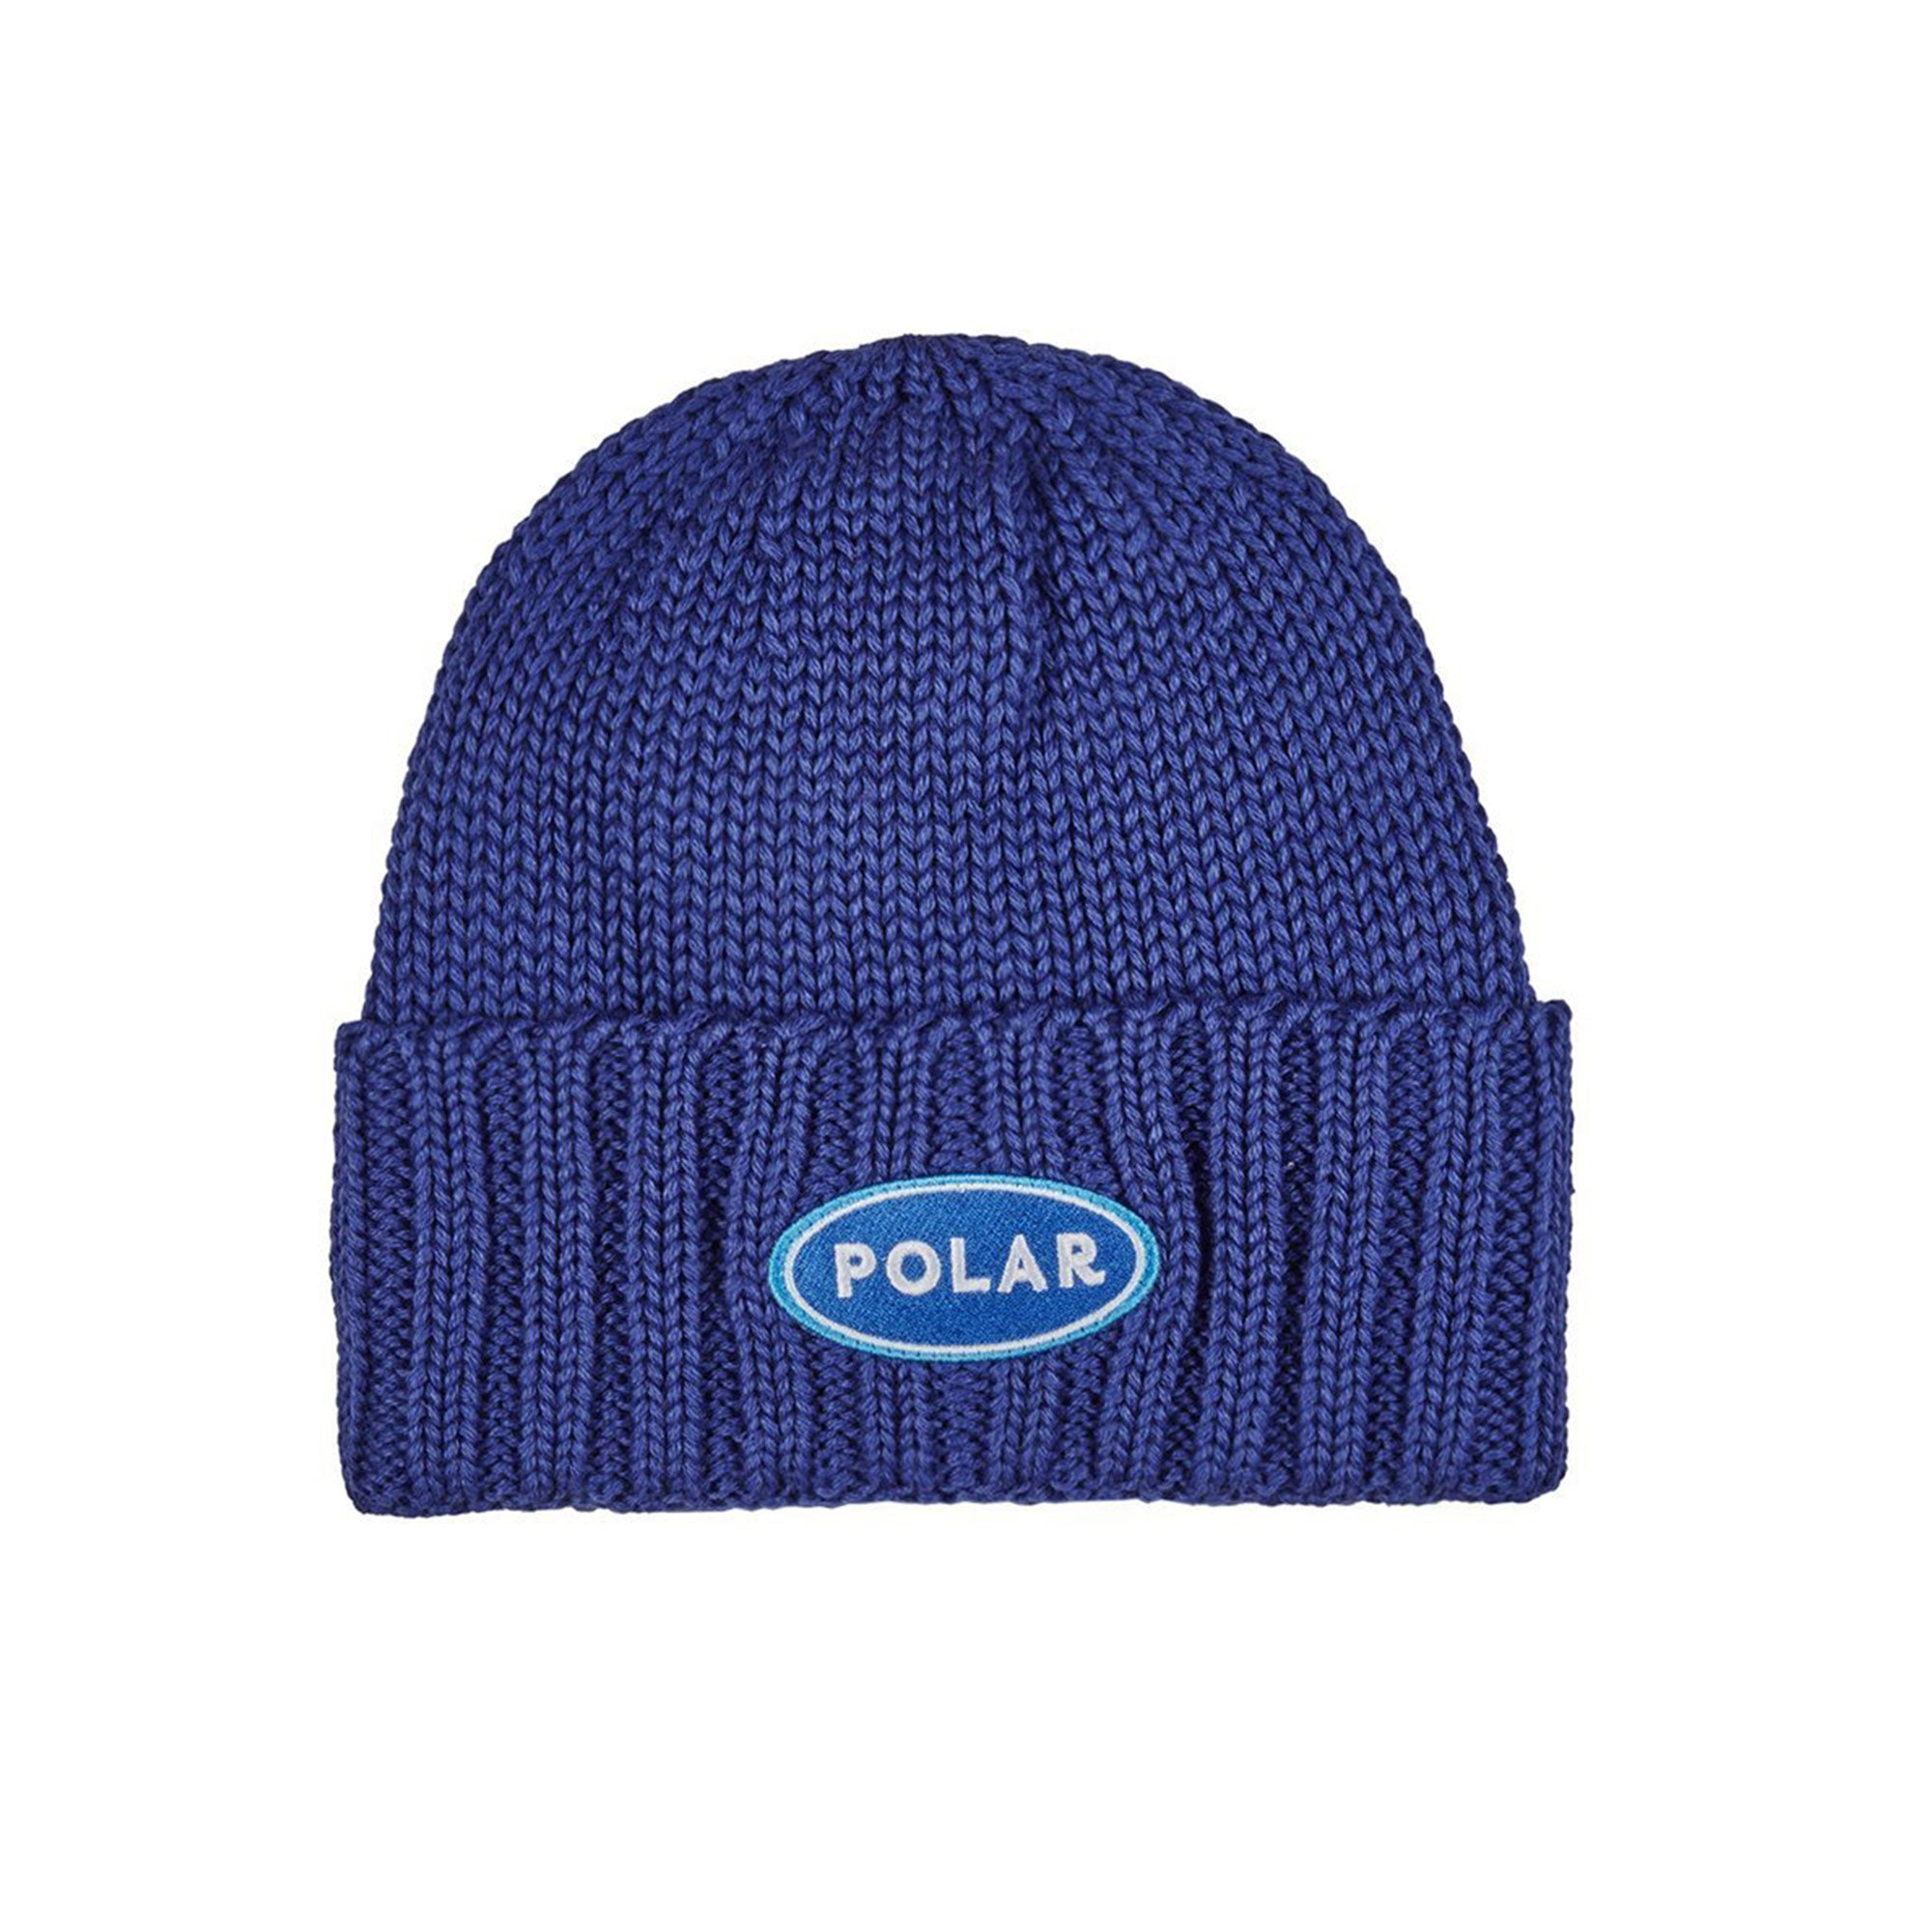 Polar Patch Beanie Product Photo #1